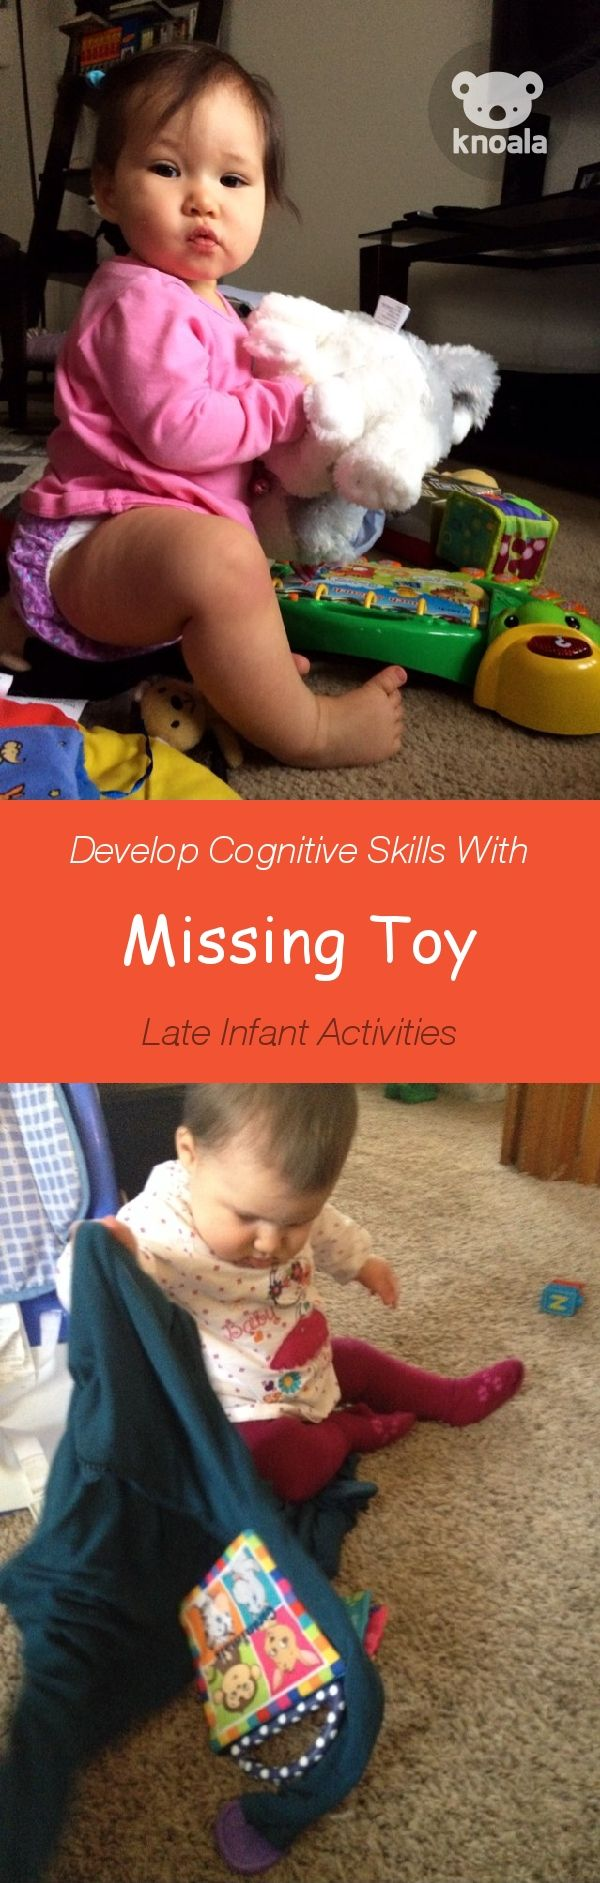 #Knoala Late Infant activity 'Missing Toy' helps little ones develop Cognitive and Sensory skills in just 5 mins. Click for simple instructions & 1000s more fun, easy, no-prep activities for kids ages 0-5! #activities #DIY